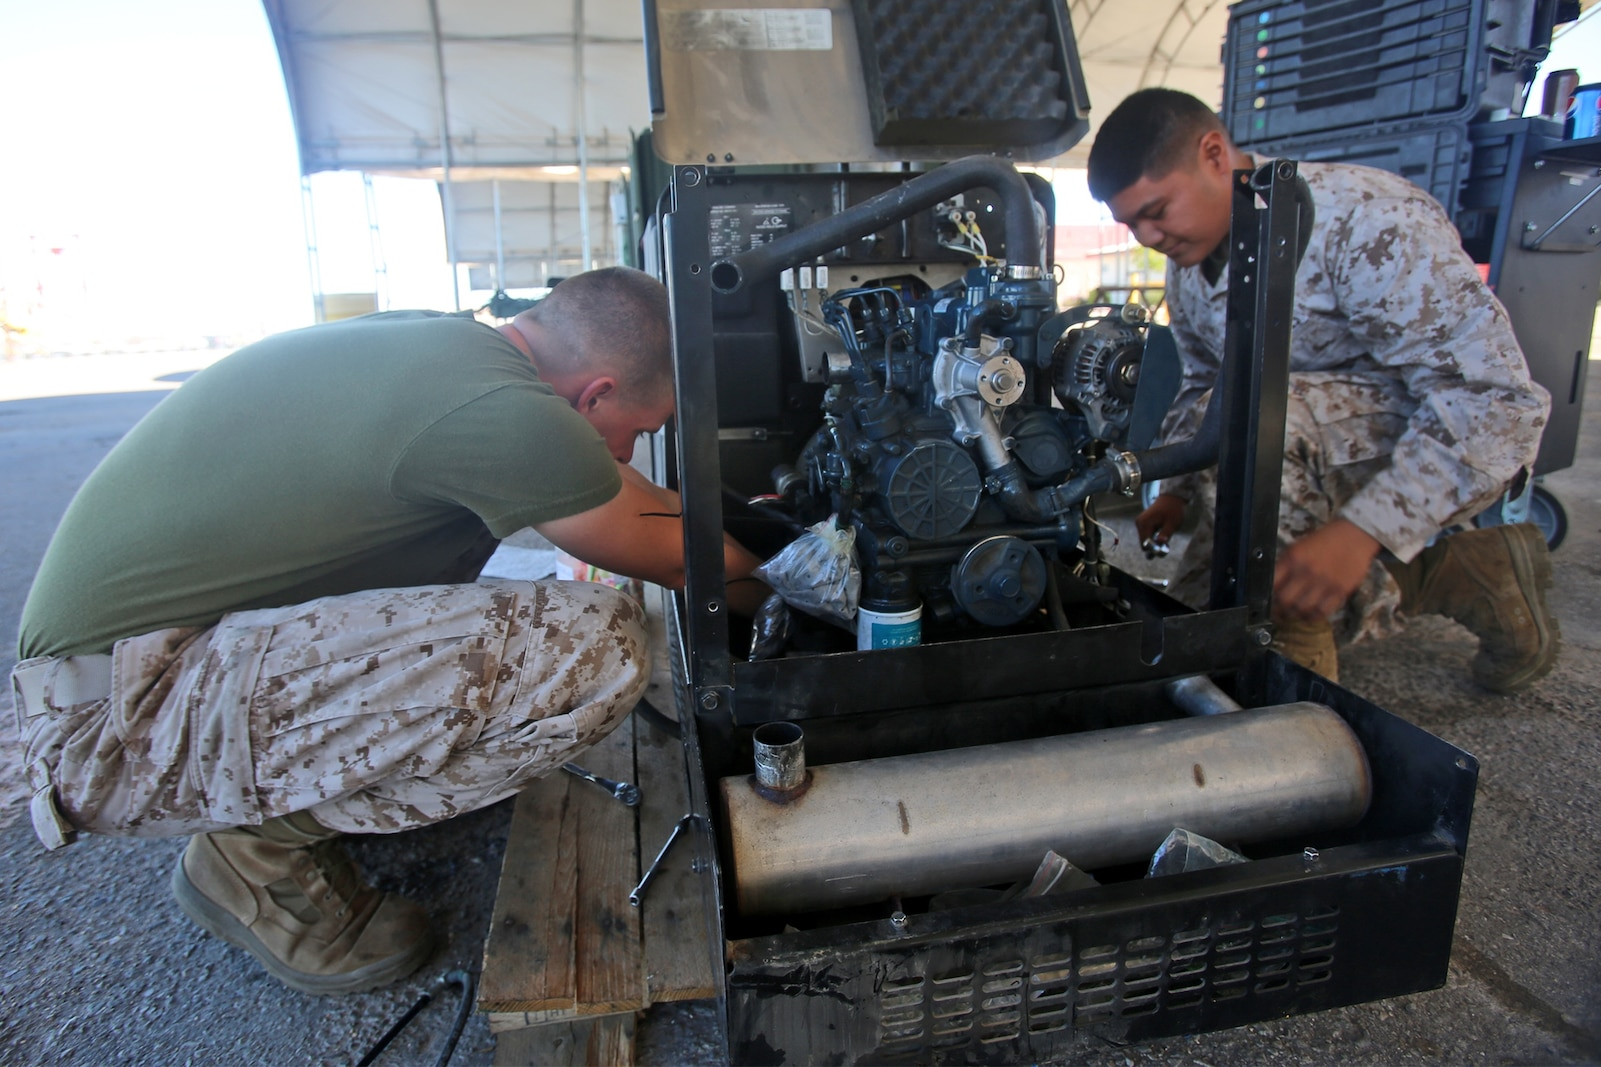 Heavy equipment mechanics with Combat Logistics Company 16, Combat Logistics Regiment 15, 1st Marine Logistics Group, repair a generator at a combat operations center during Weapons and Tactics Instructor Course 1-14 aboard Marine Corps Air Station Yuma, Ariz., Oct. 2, 2013. The COC provided logistical support and services to units from 1st MLG including CLR-15, CLR-1, CLR-17, 7th Engineer Support Battalion, 1st Maintenance Battalion and 1st Medical Battalion during WTI 1-14.